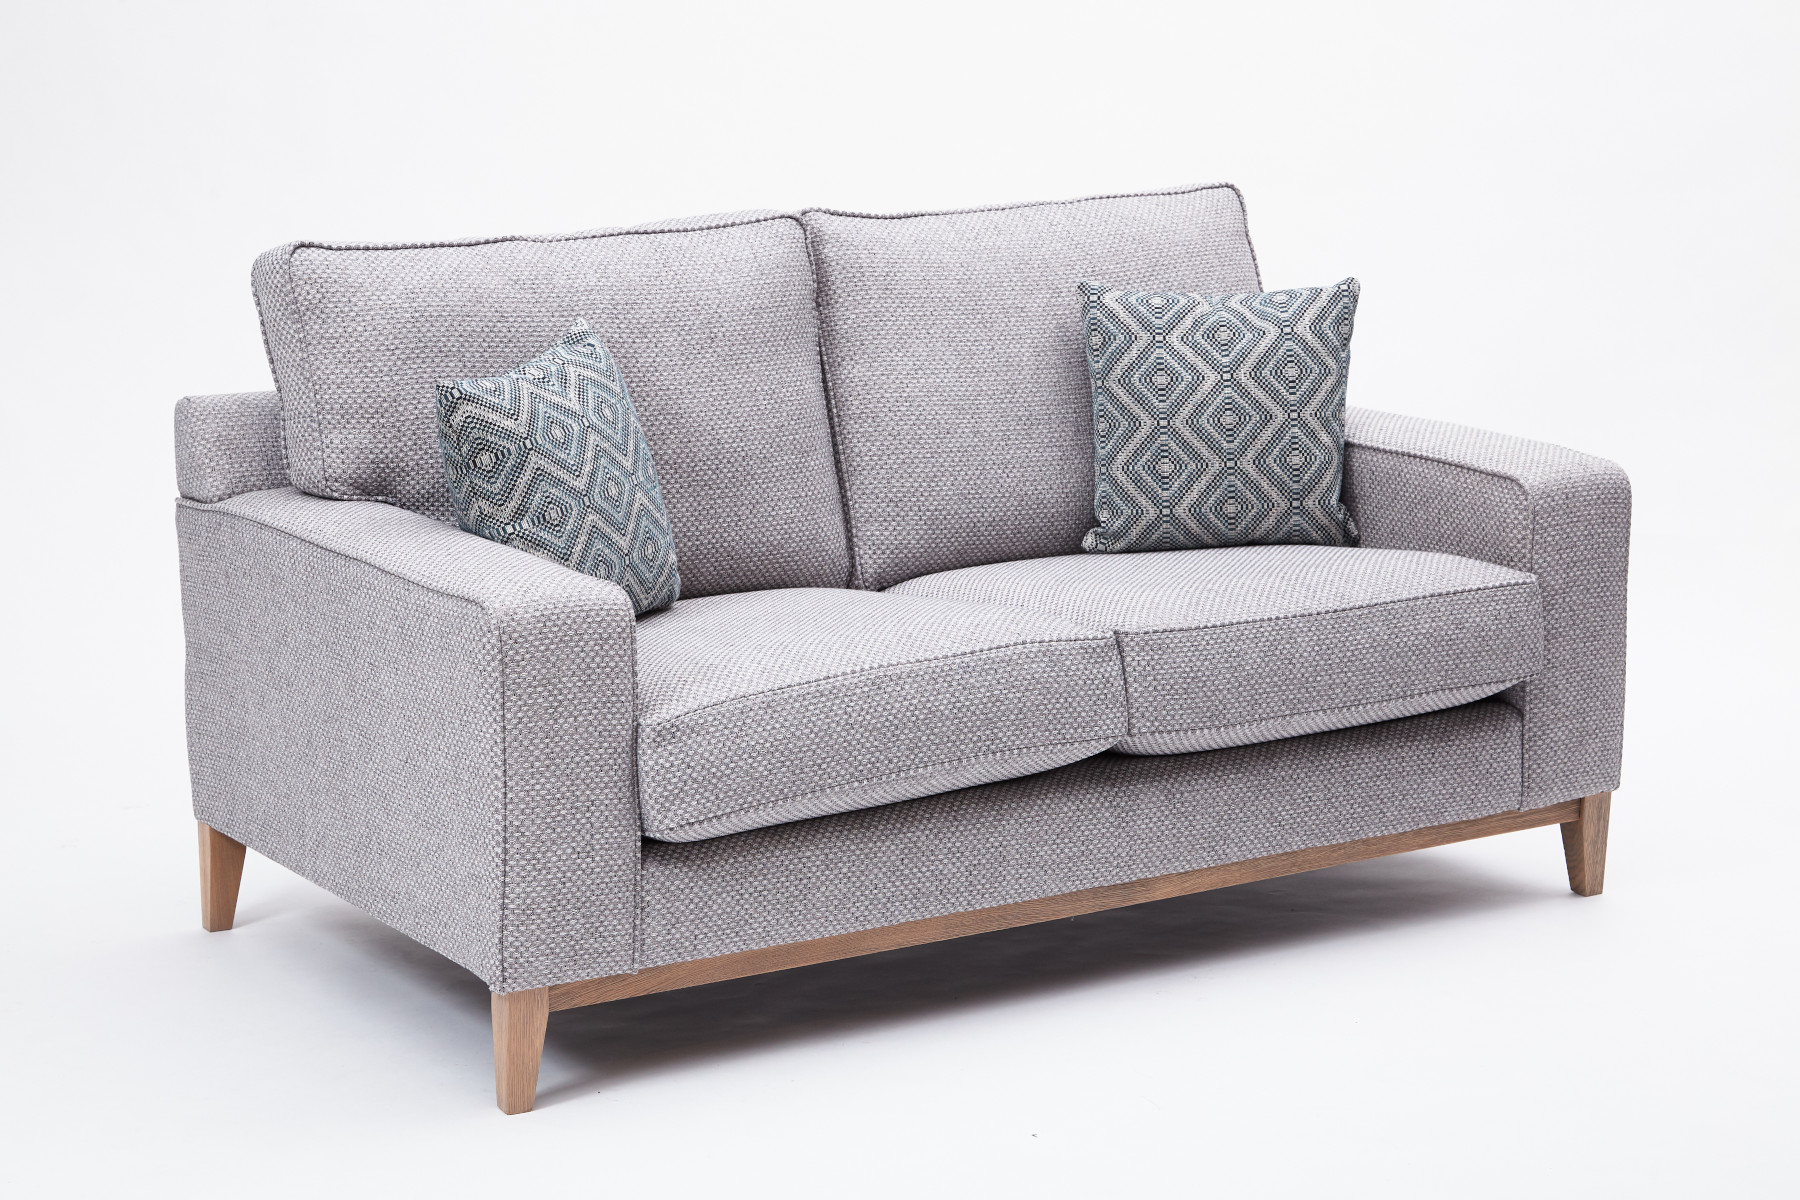 Erikson 2 Seater Sofa